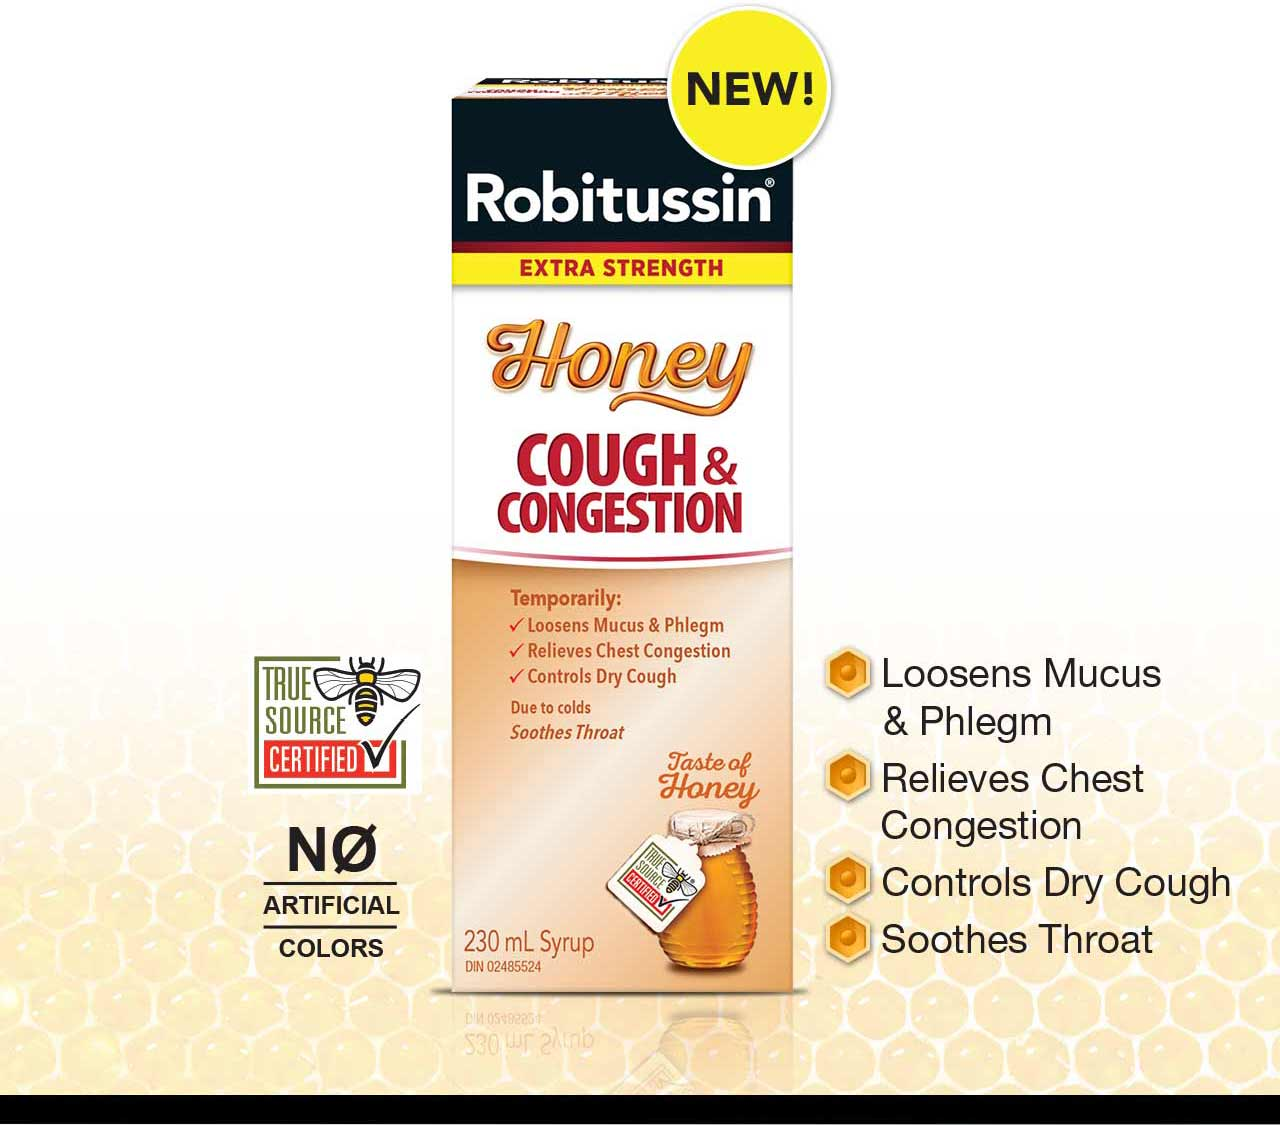 Loosens Mucus & Phlegm, Relieves chest congestion, Controls Dry Cough, Soothes Throat.